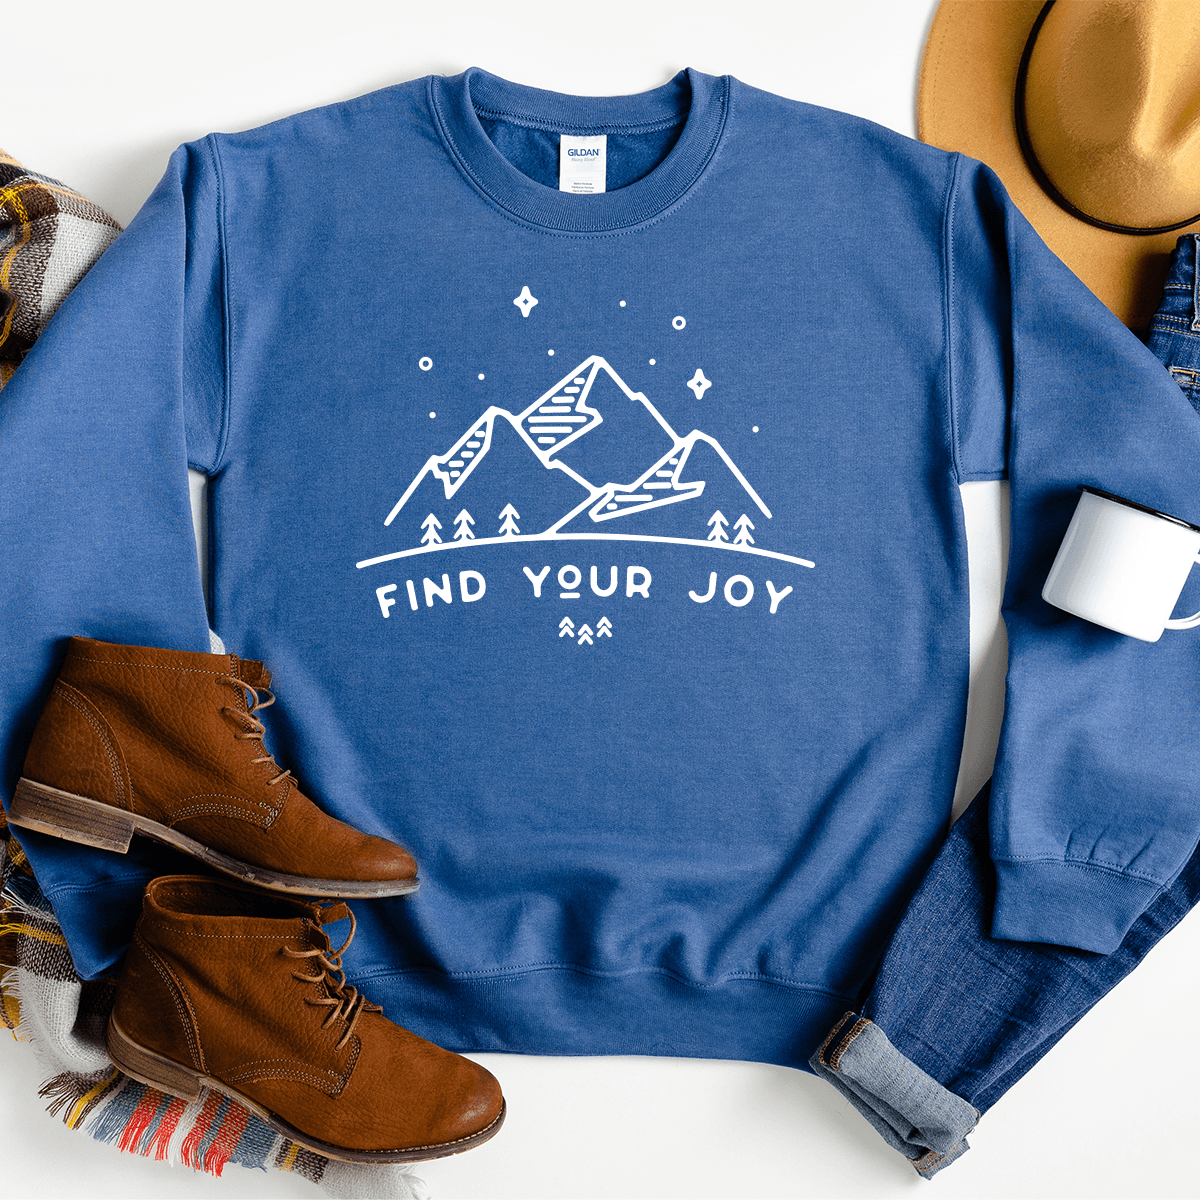 Find Your Joy - Sweatshirt